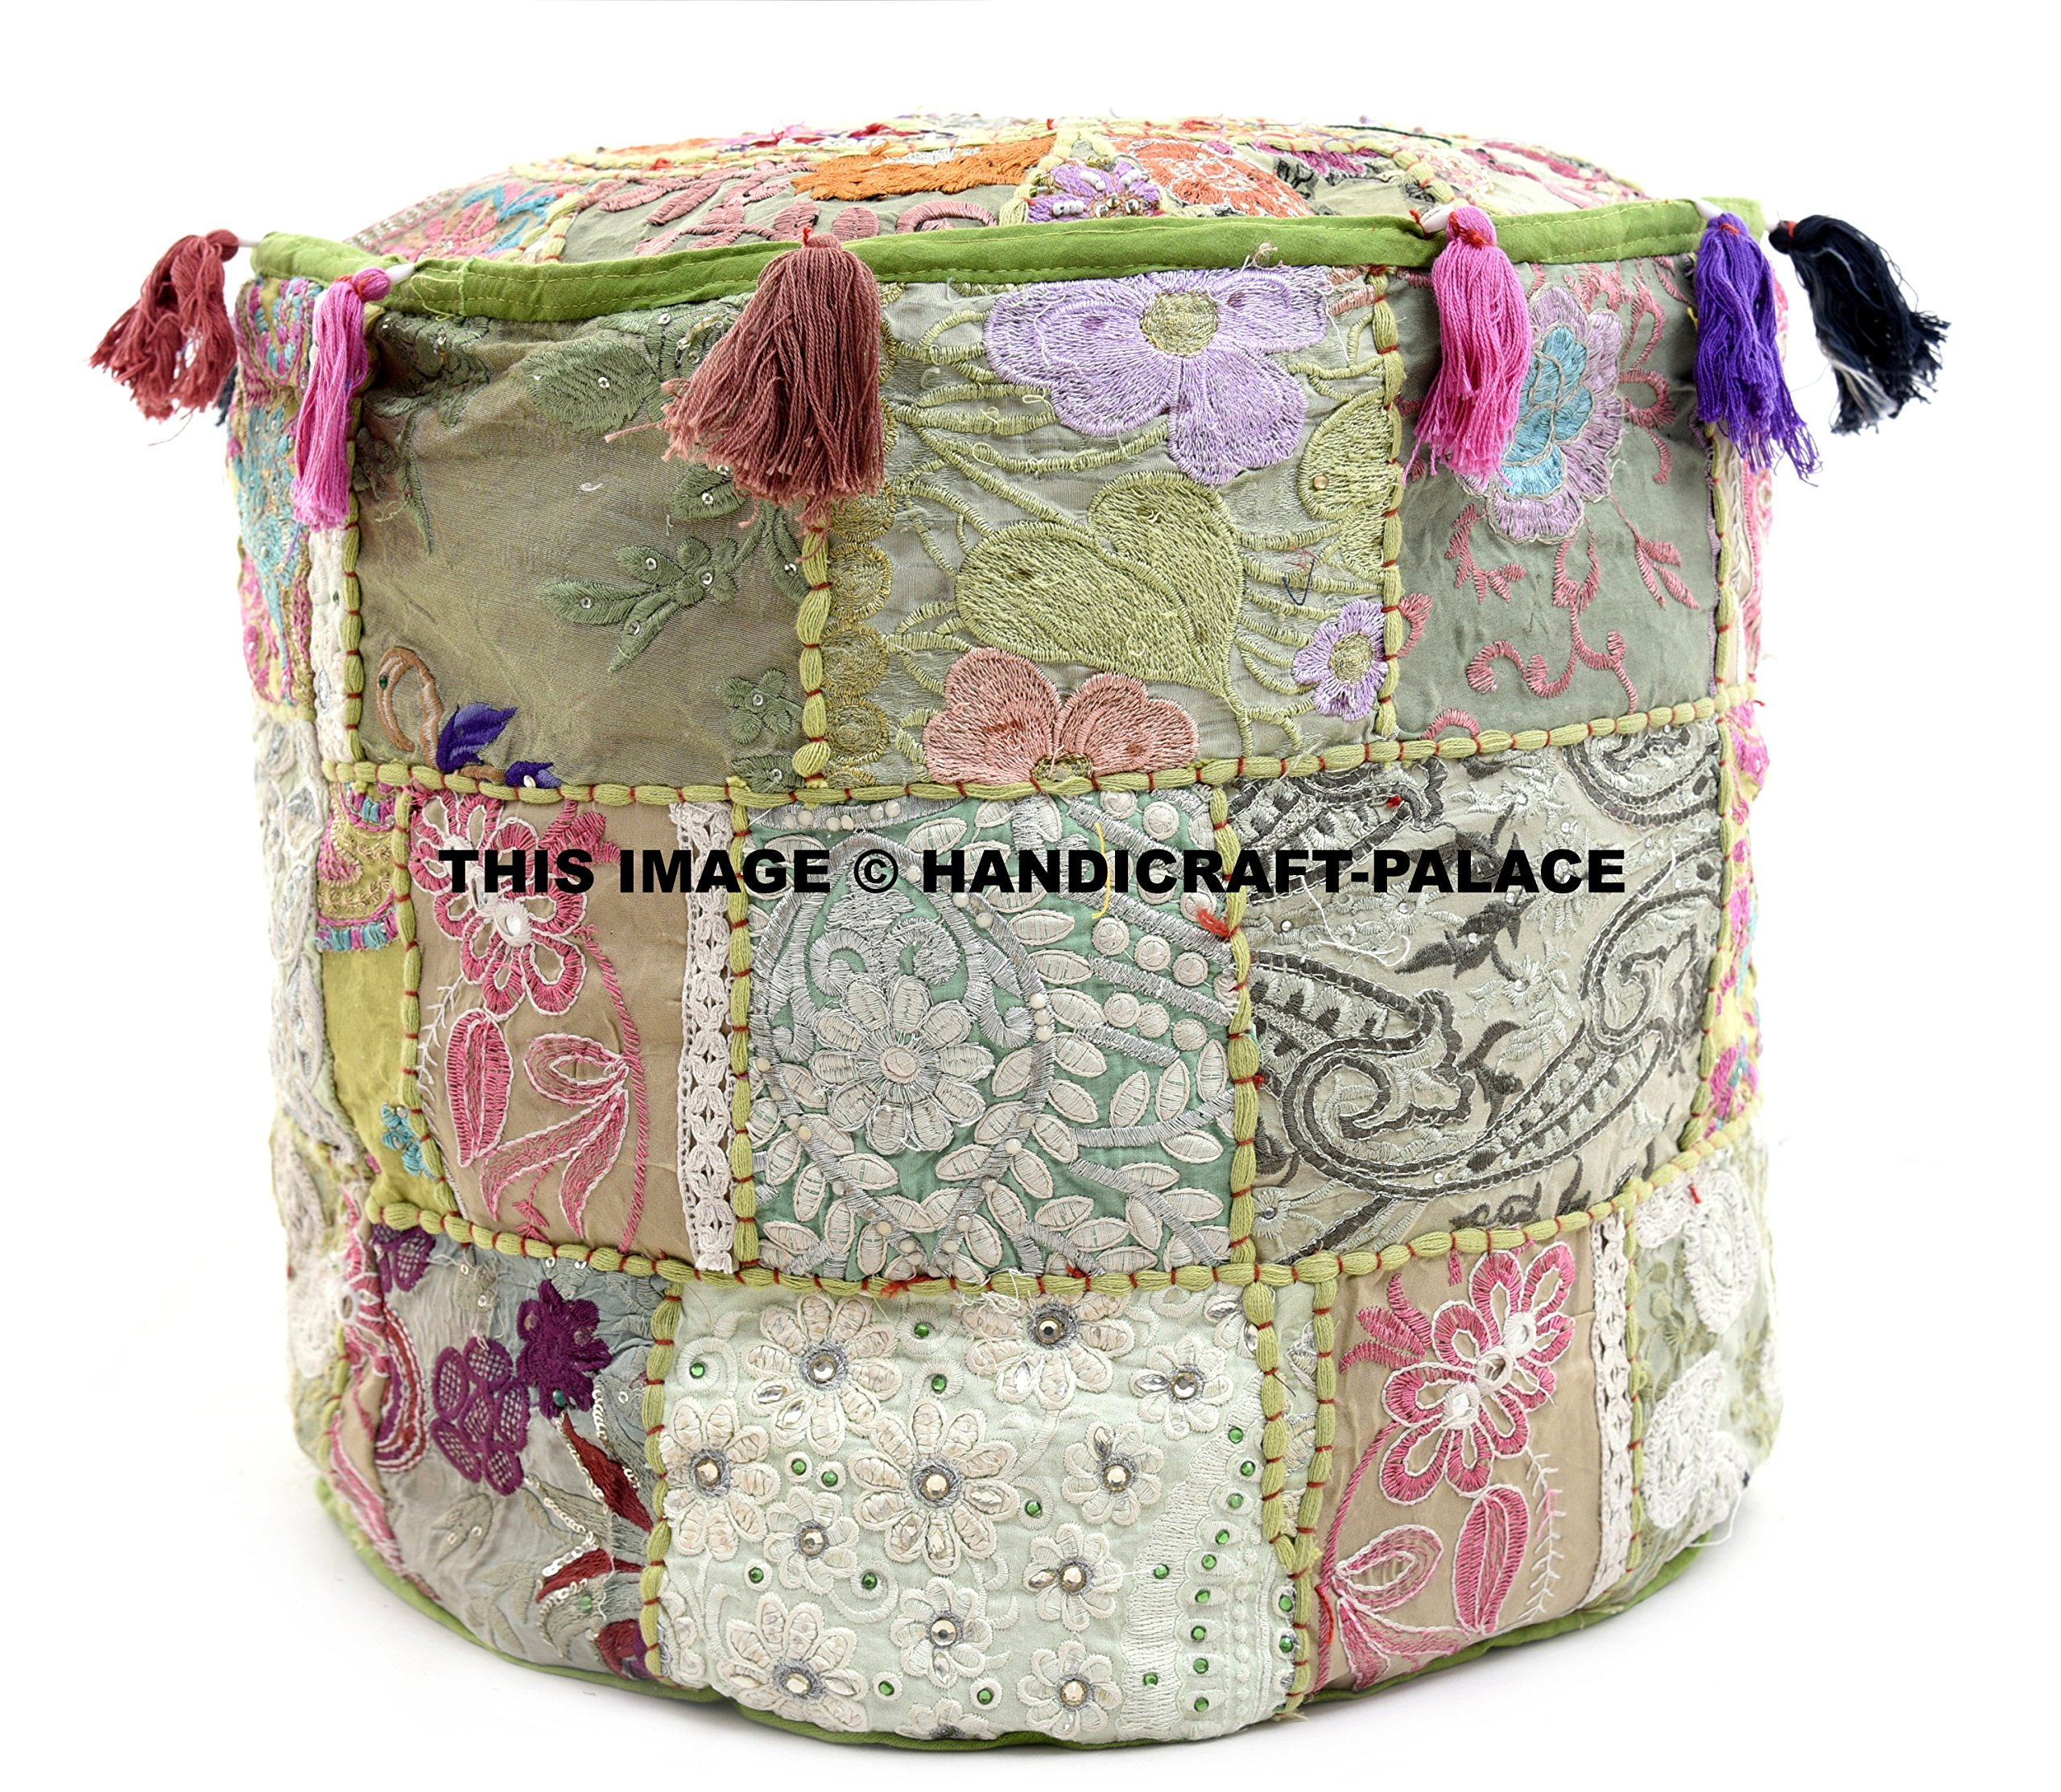 HANDICRAFT-PALACE Indian Traditional Cotton Round Ottoman Cushion Pouffe Cover/Bohemian Handmade Patchwork Floor Footstool for Sofa Couch/Vintage Ethnic Kantha Designer Embroidery Tassel Hassock by HANDICRAFT-PALACE